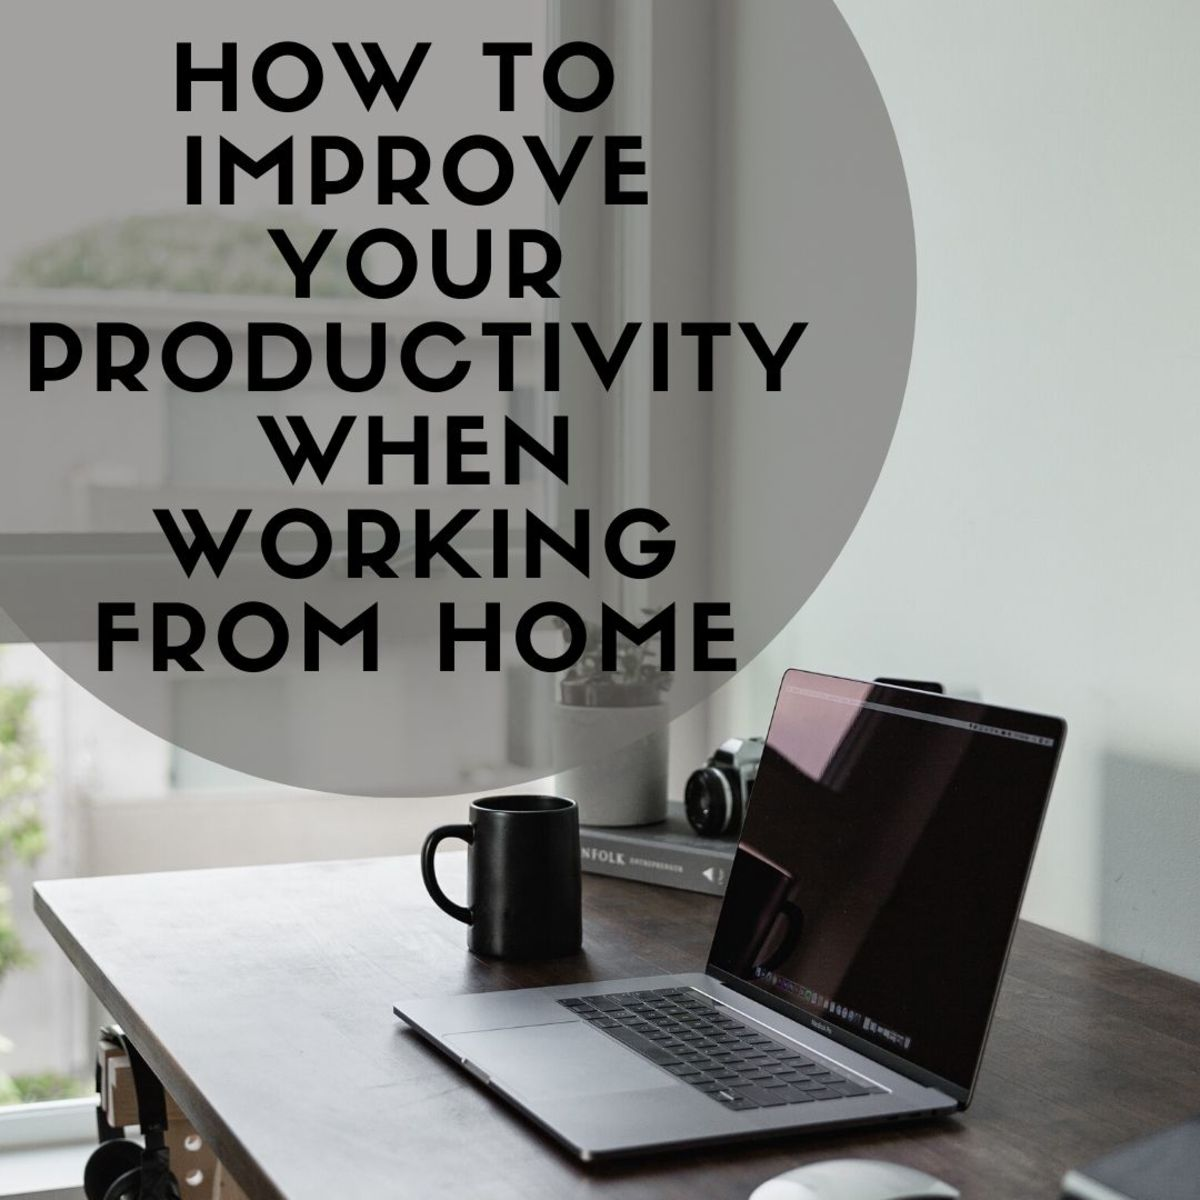 10 Tips to Improve Productivity When Working From Home